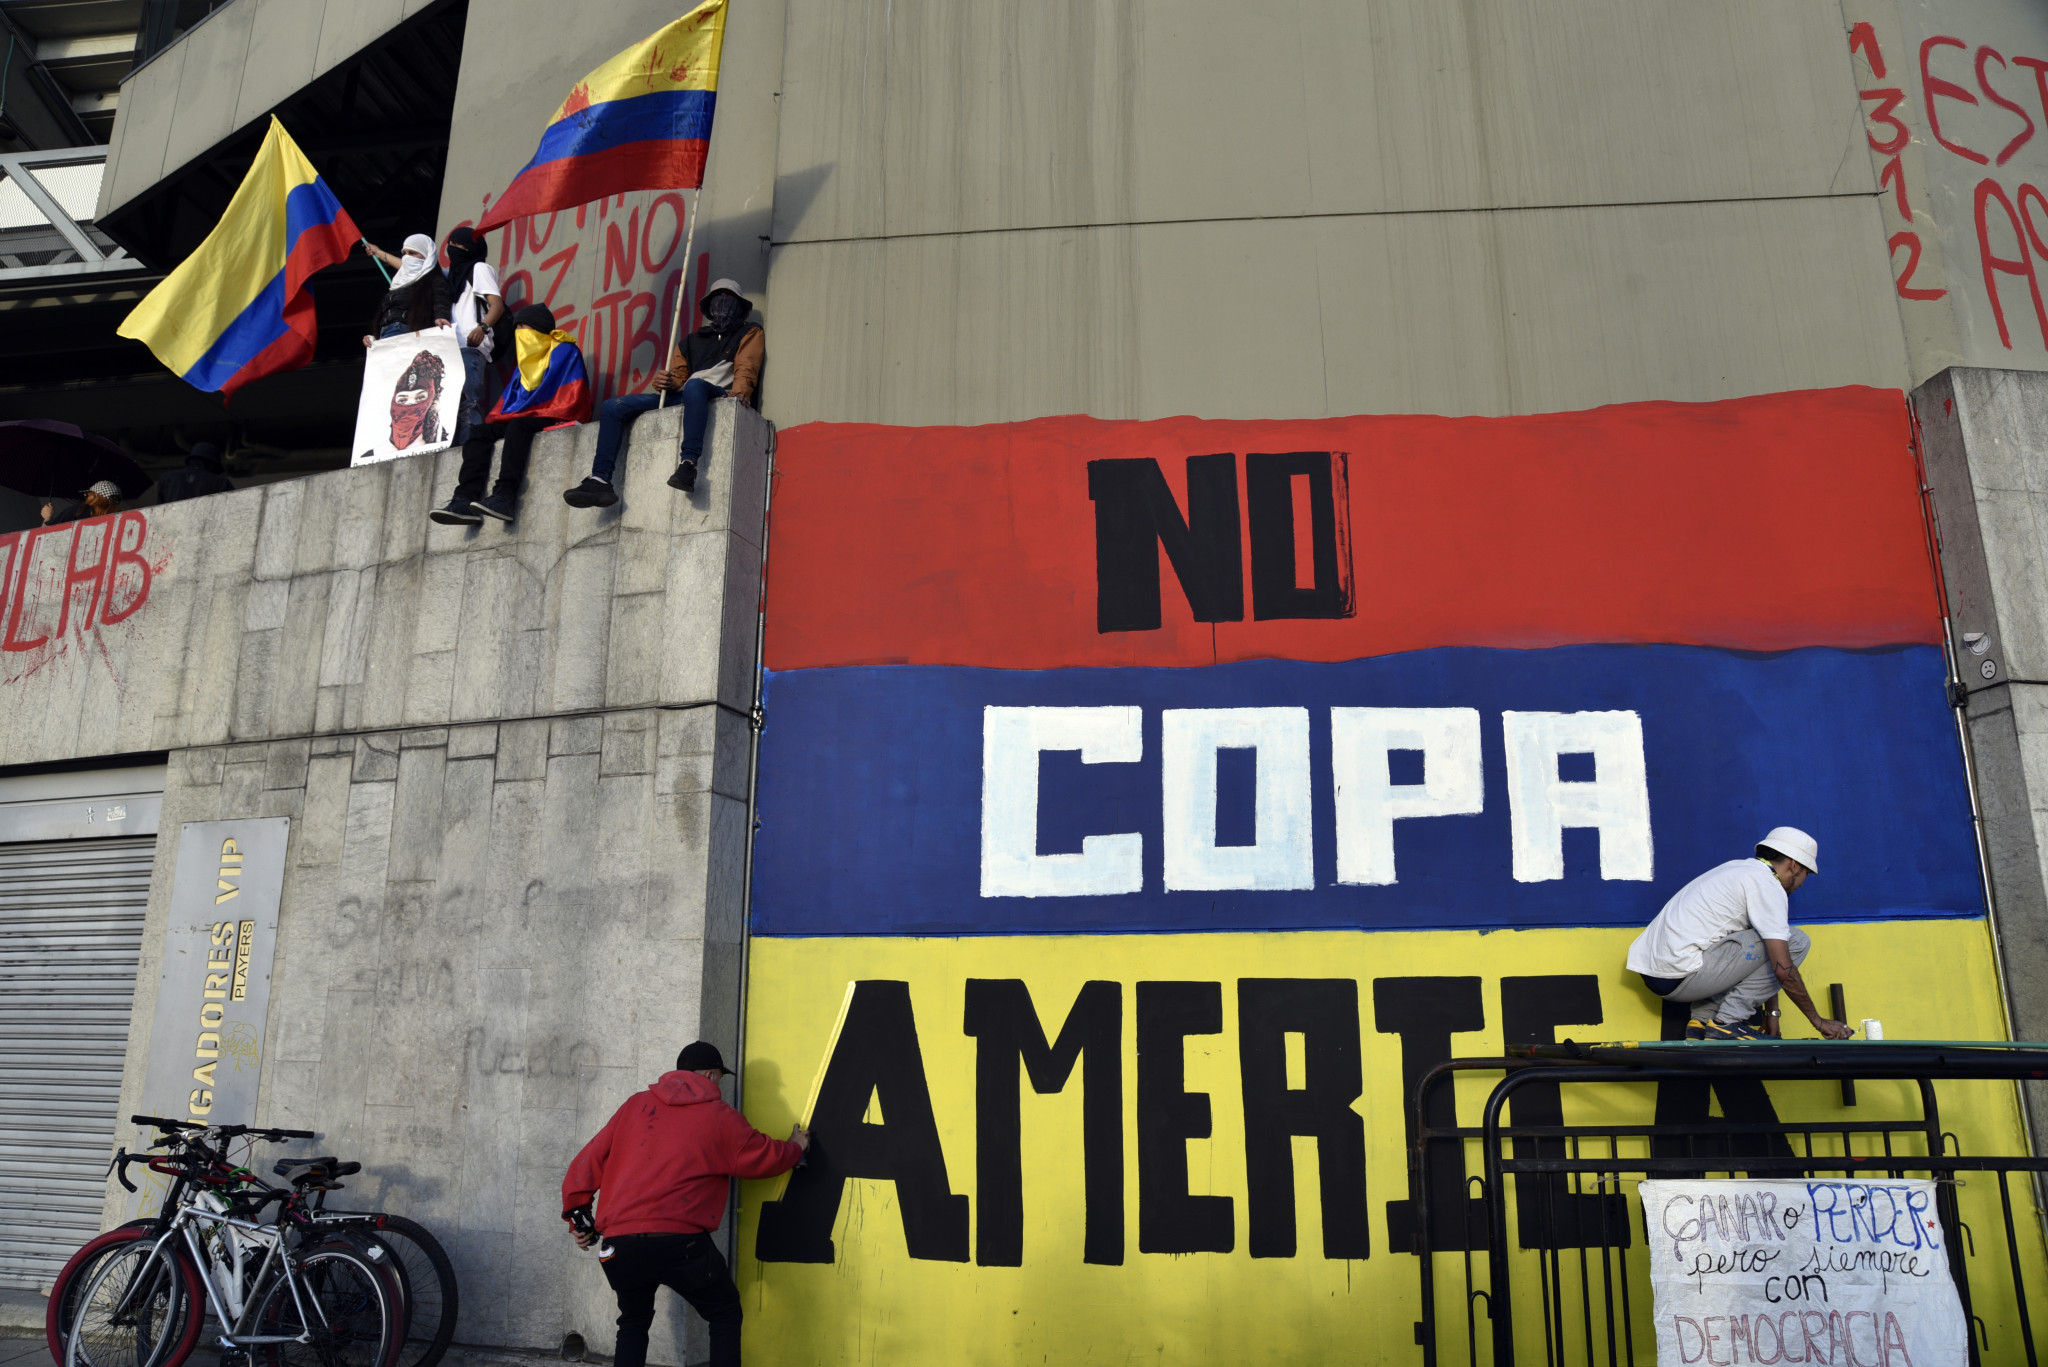 Colombia removed as co-host of rescheduled Copa América amid mass protests